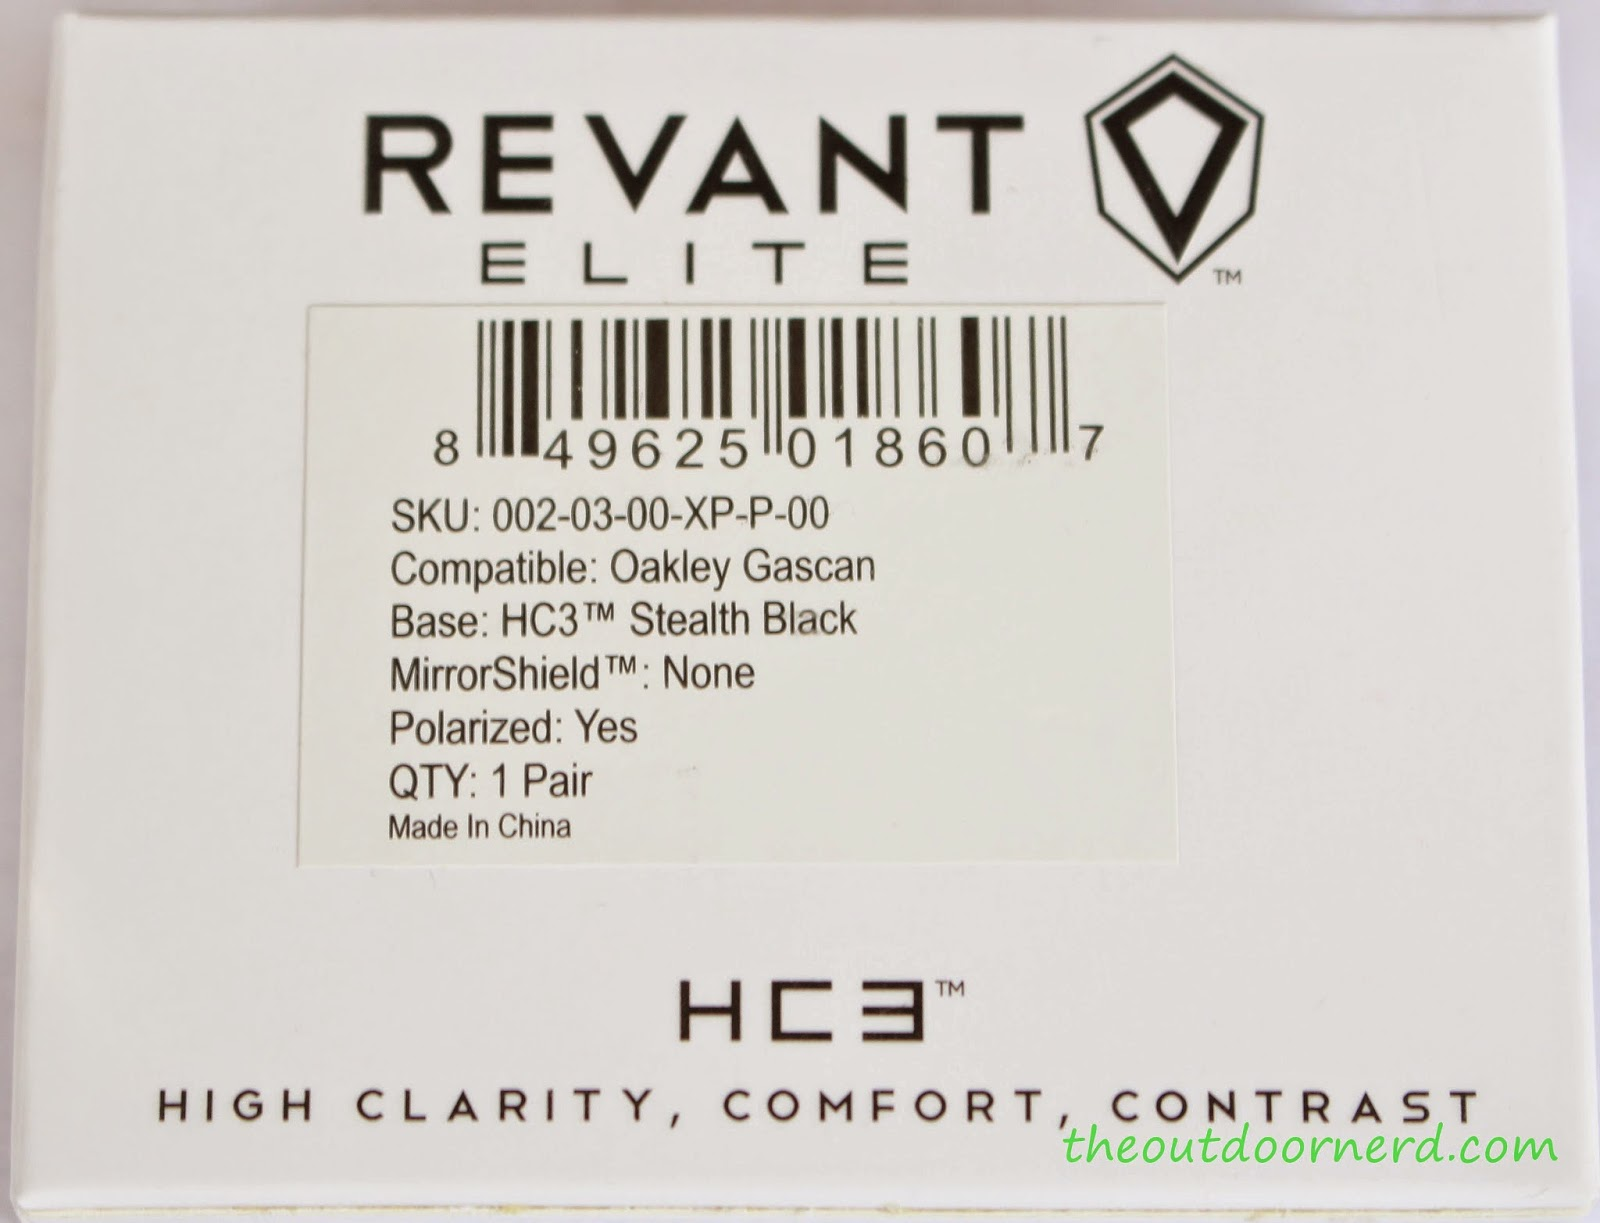 best aftermarket oakley replacement lenses 21gq  Revant Elite HC3 Replacement Lenses For Oakley GasCan In Box